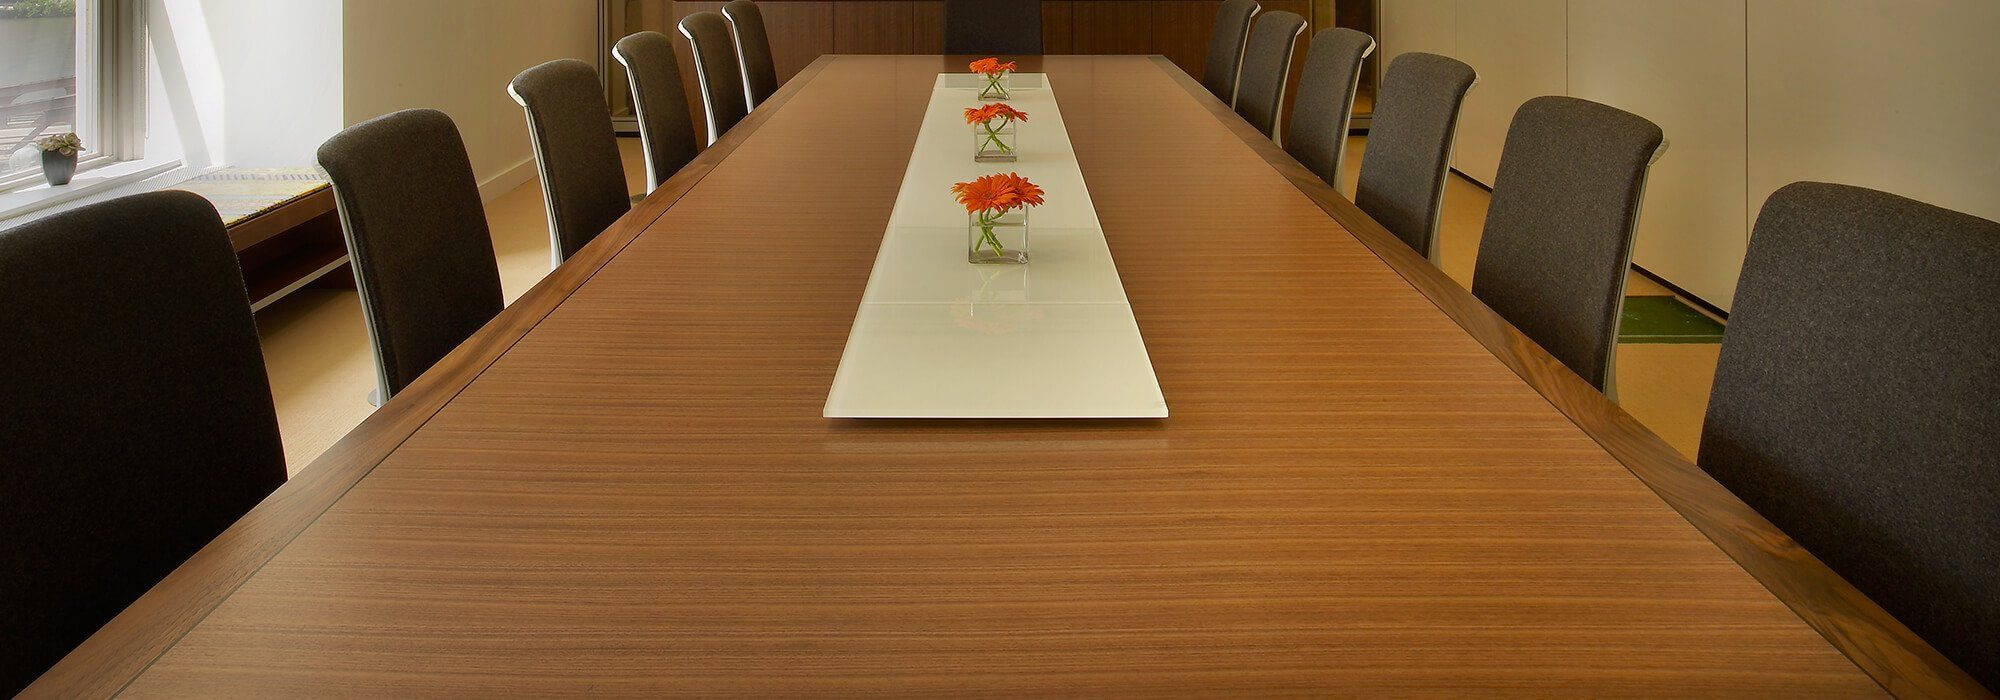 executive-wood-conference-table-2 | executive board room